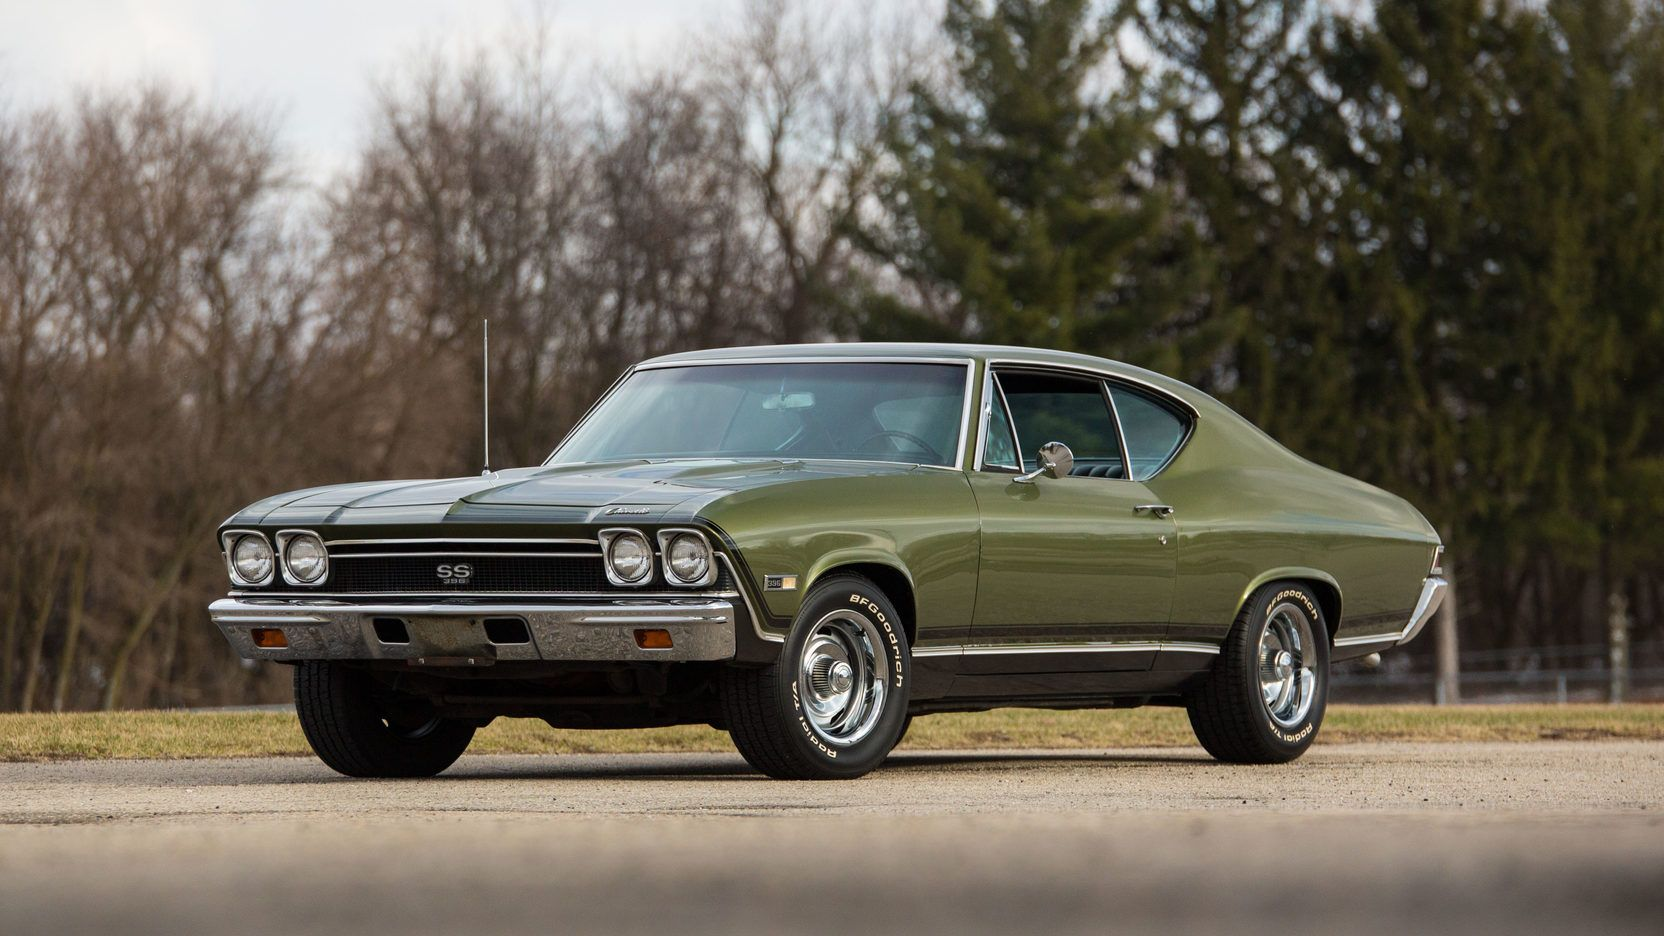 1968 chevrolet chevelle ss396 ss special order verdoro green 395 325hp 4bbl